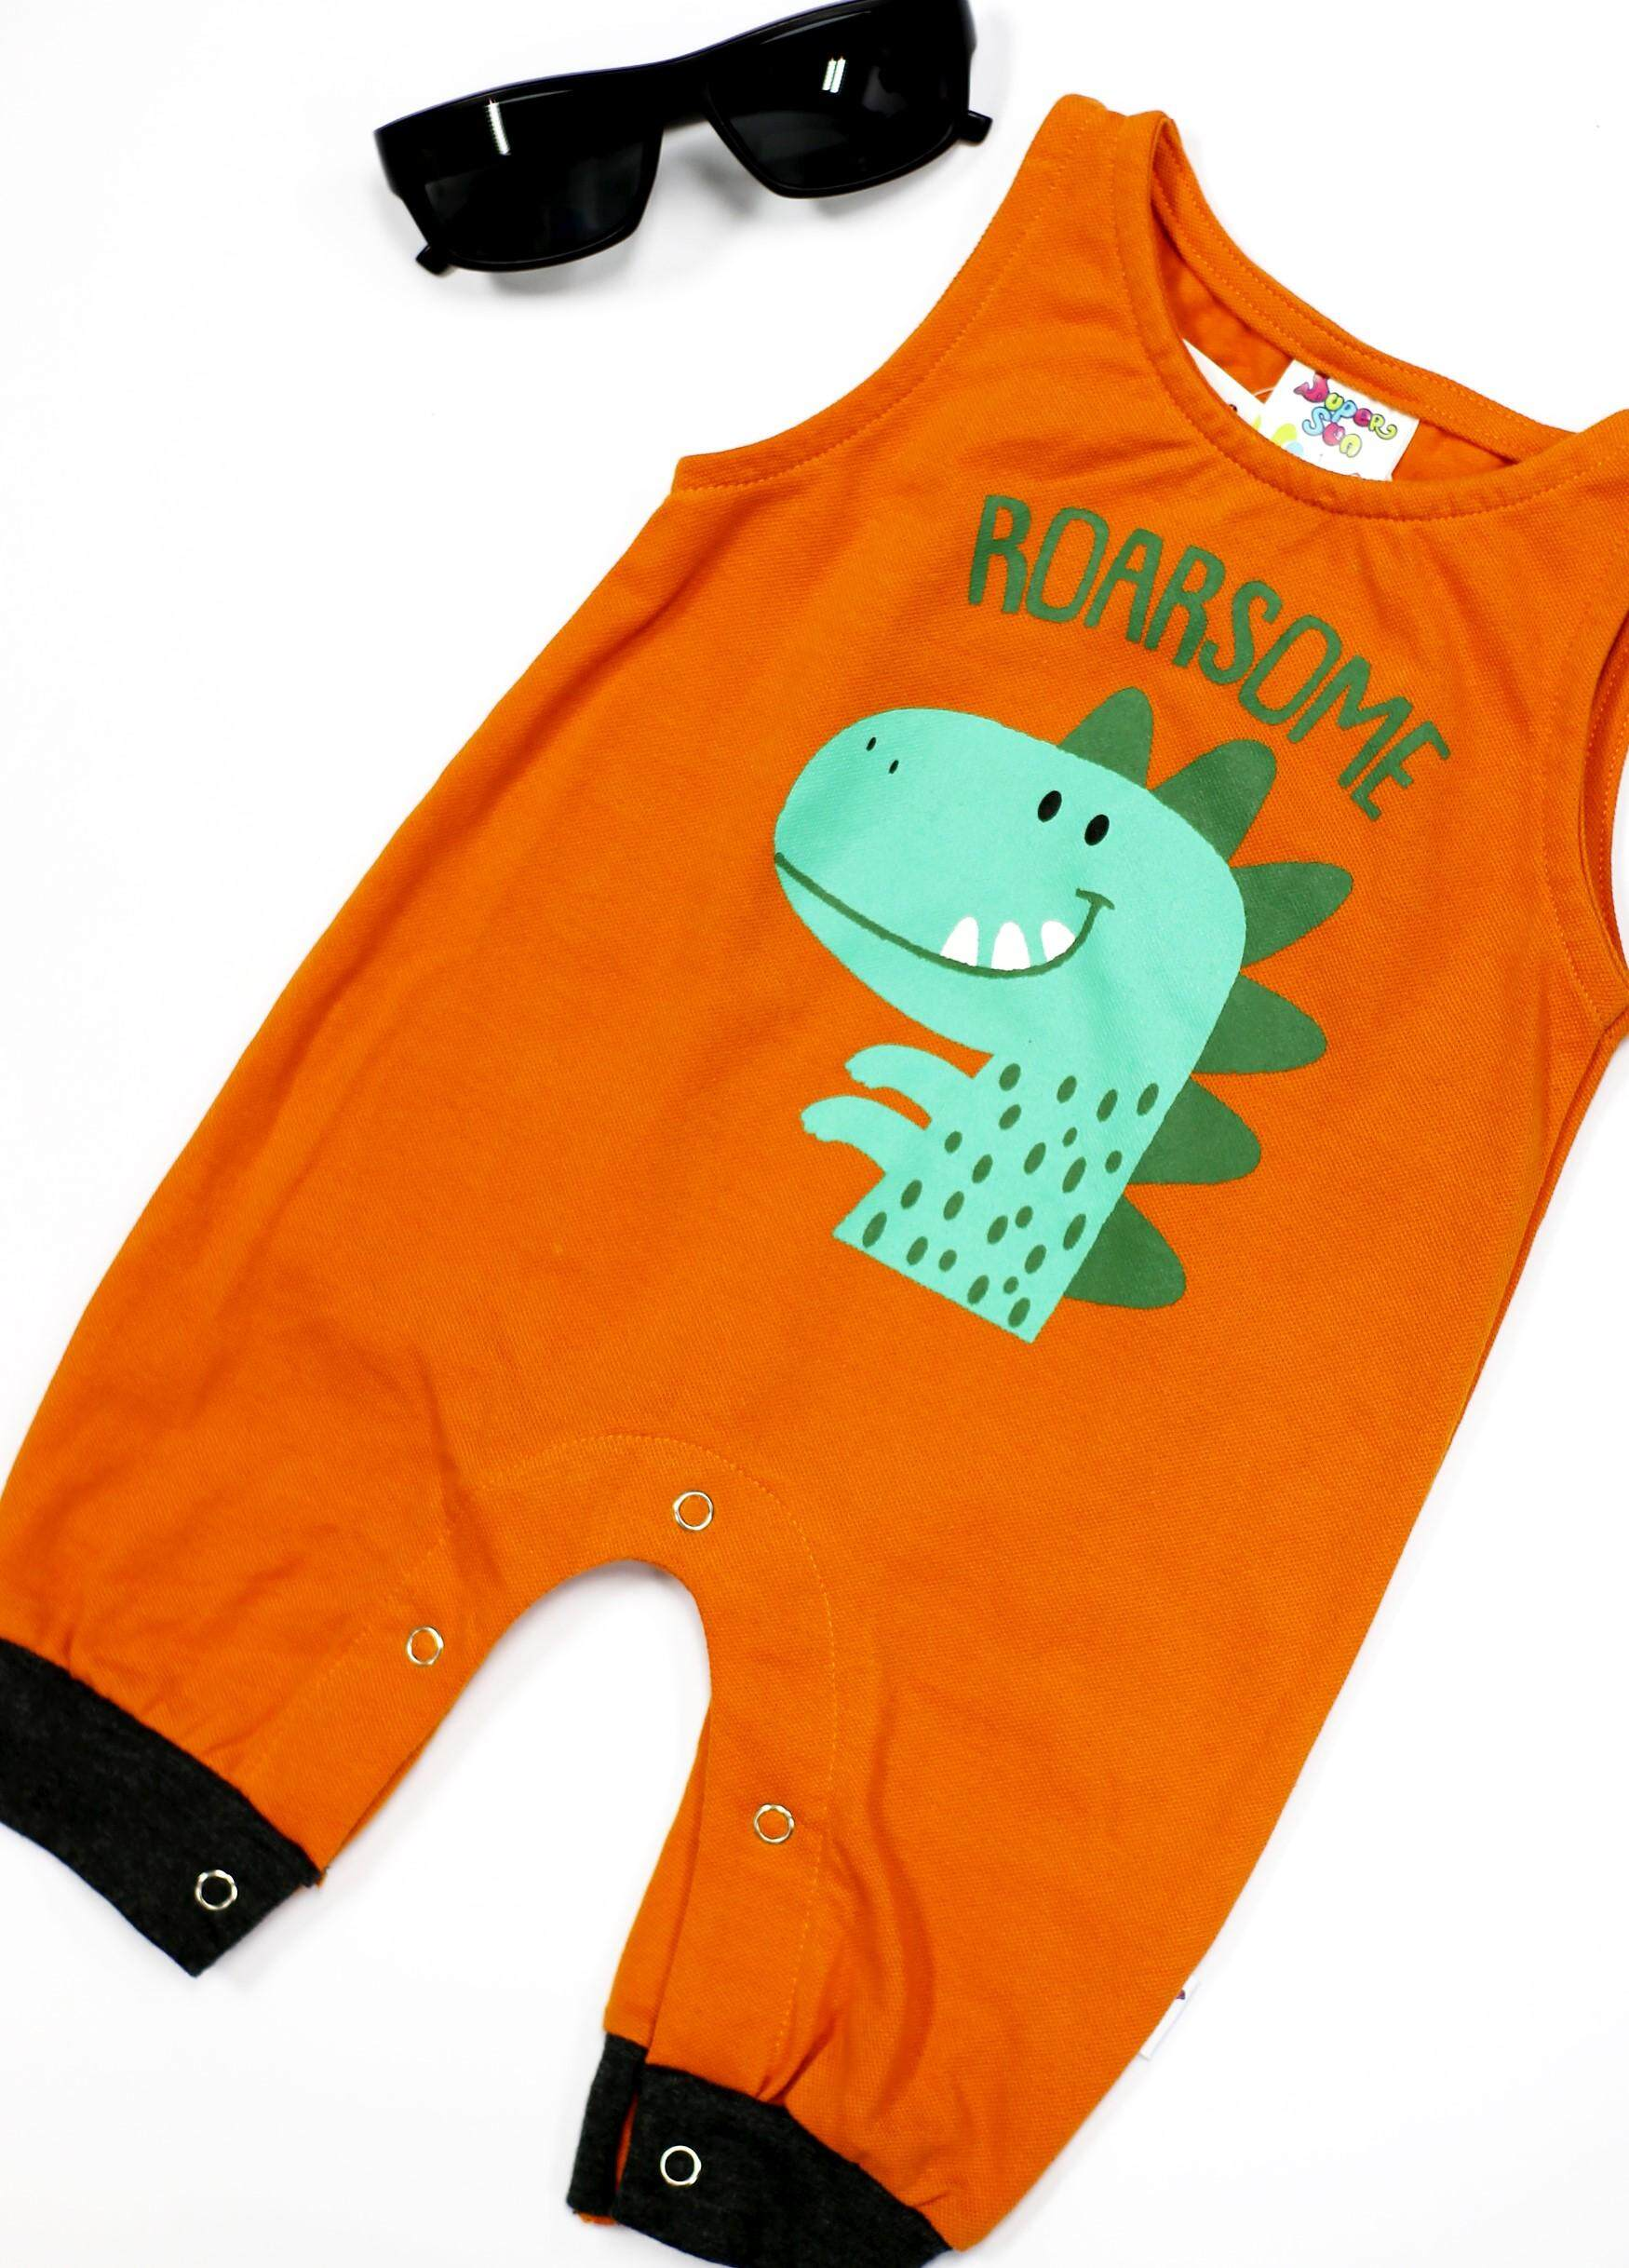 Supersun Infant Romper Newborn Boy's/Girls Short Sleeve Kids Romper Clothes RP-25 Orange